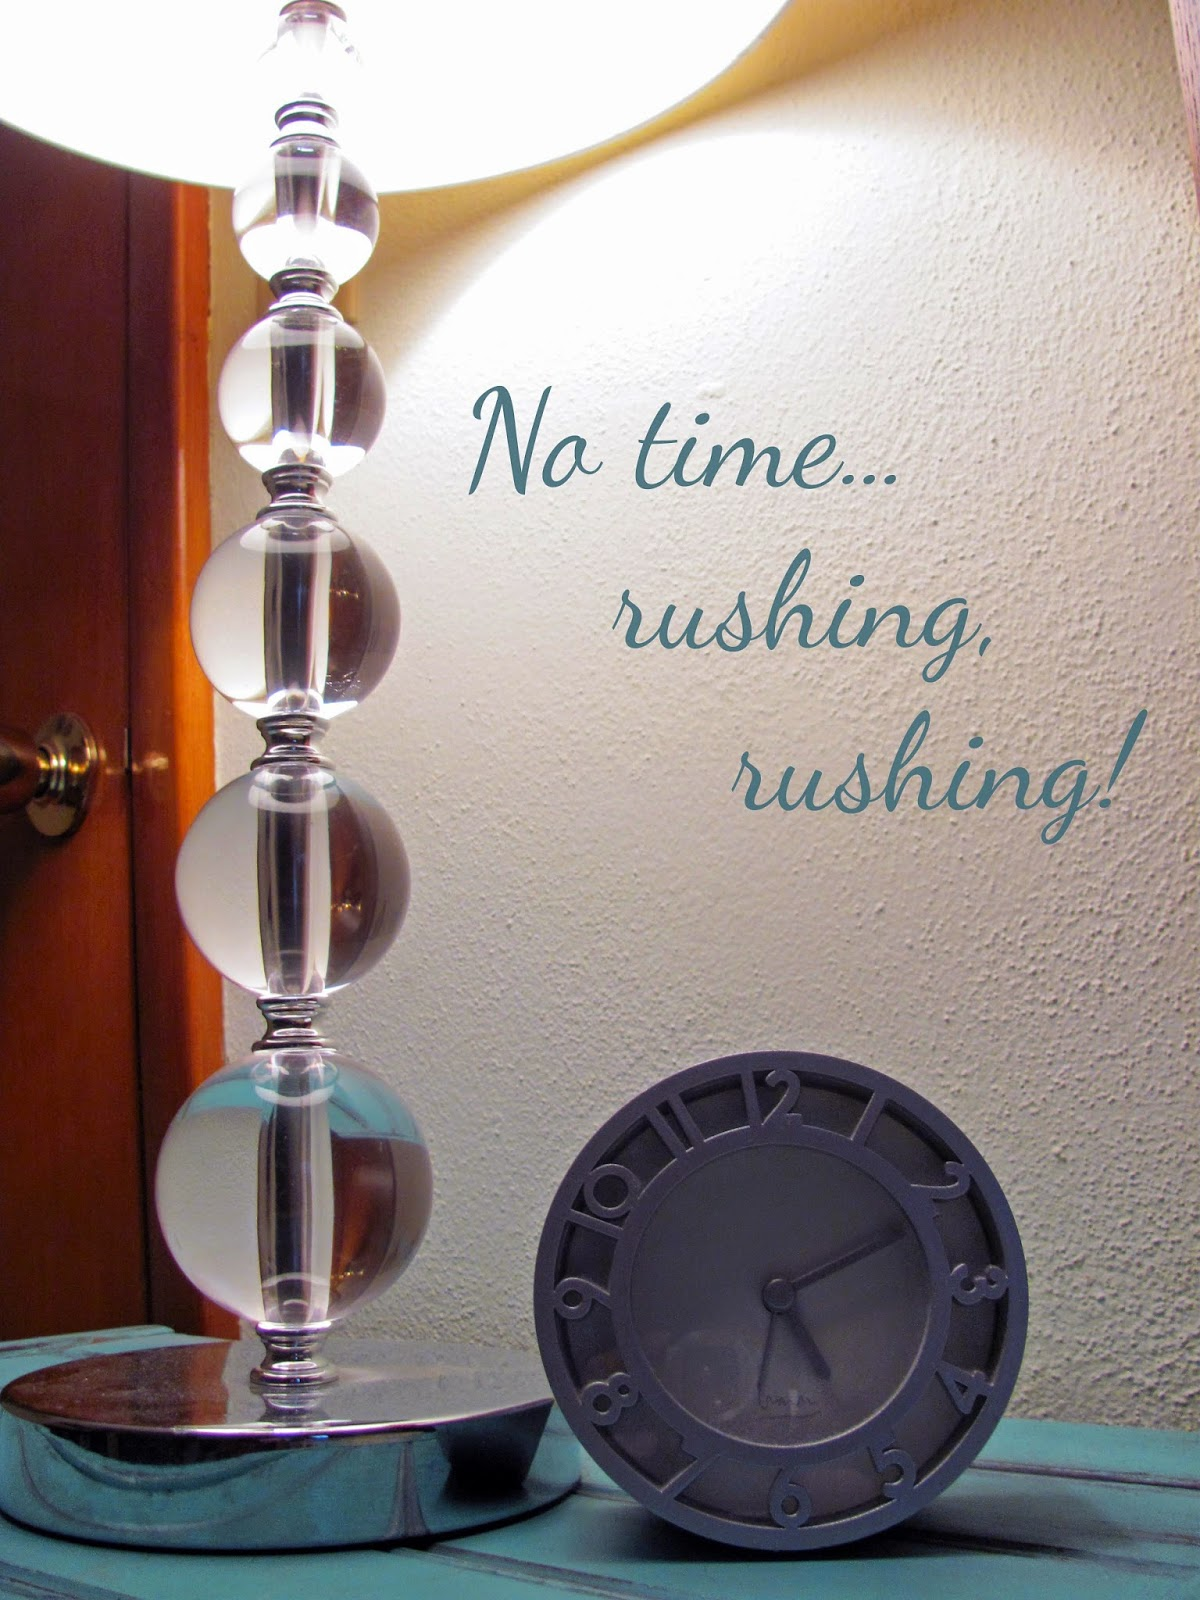 http://ichoosejoy2day.blogspot.com/2014/10/rushing-rushing.html